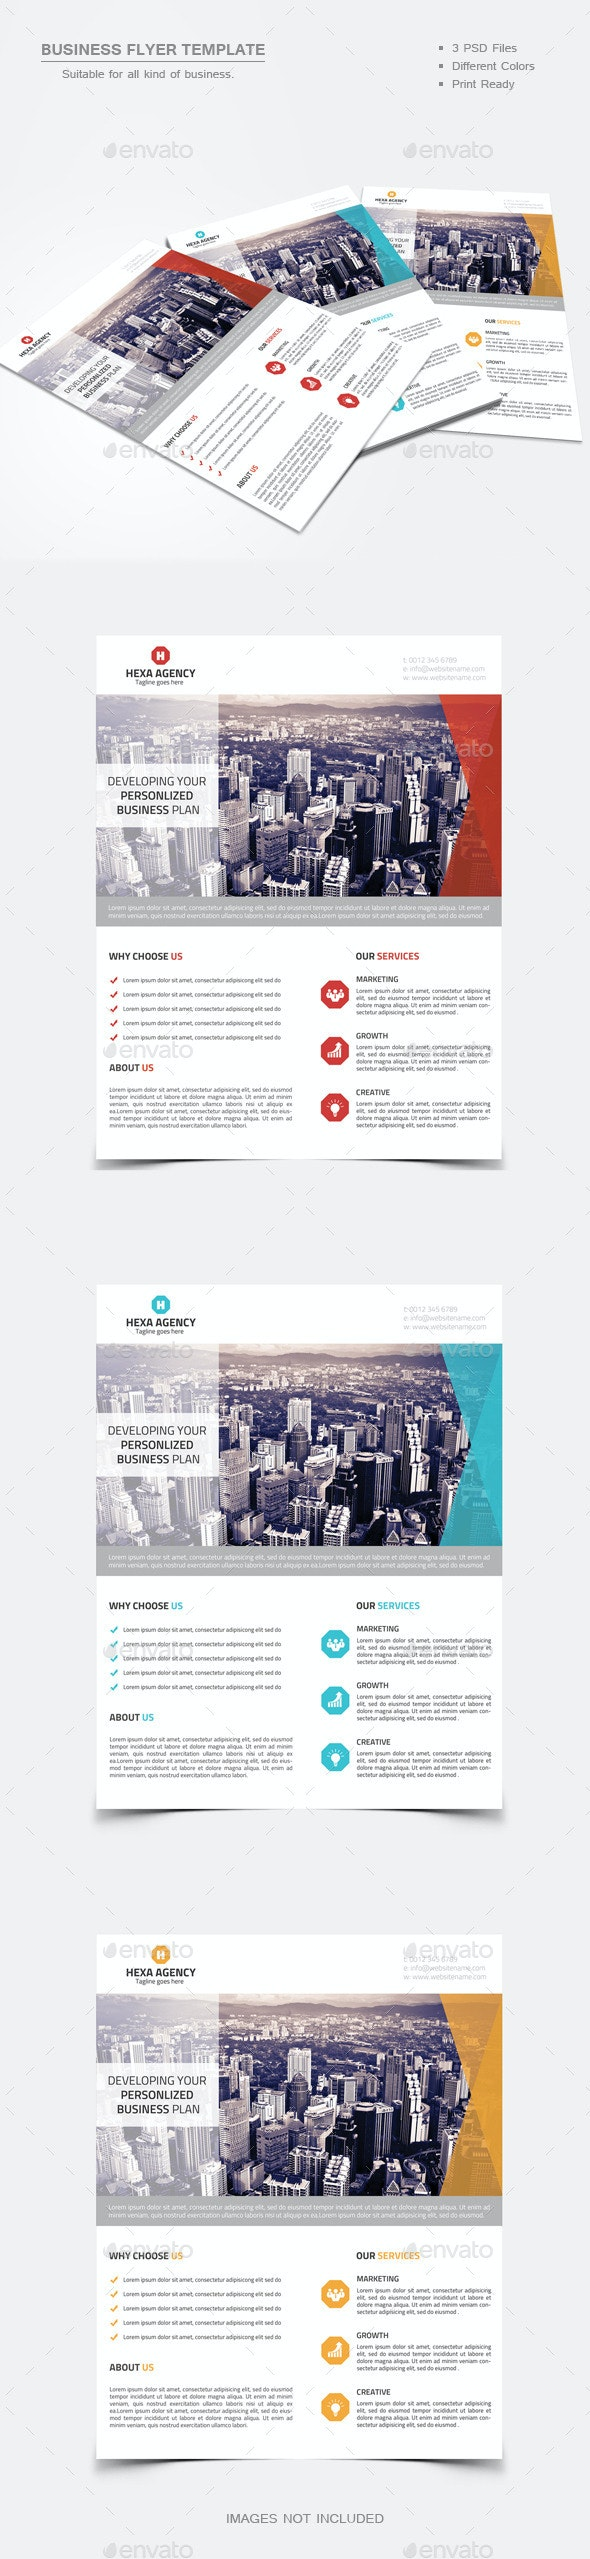 Business Flyer 02 - Corporate Flyers